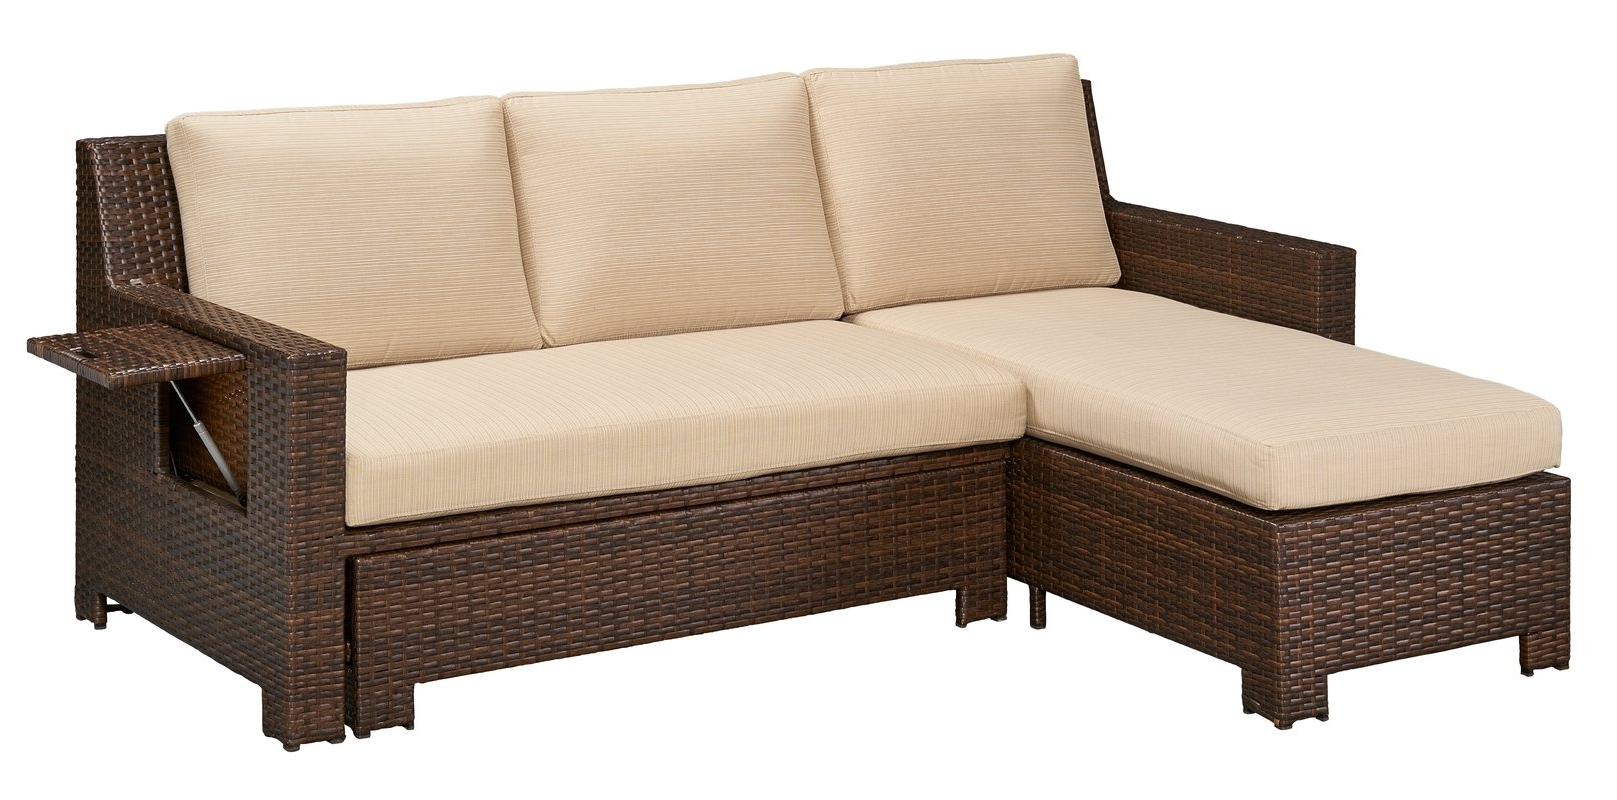 Convertible Sectional Sofas Throughout 2019 Darby Home Co Ferndale Deck Convertible Sectional Sofa With (View 7 of 20)